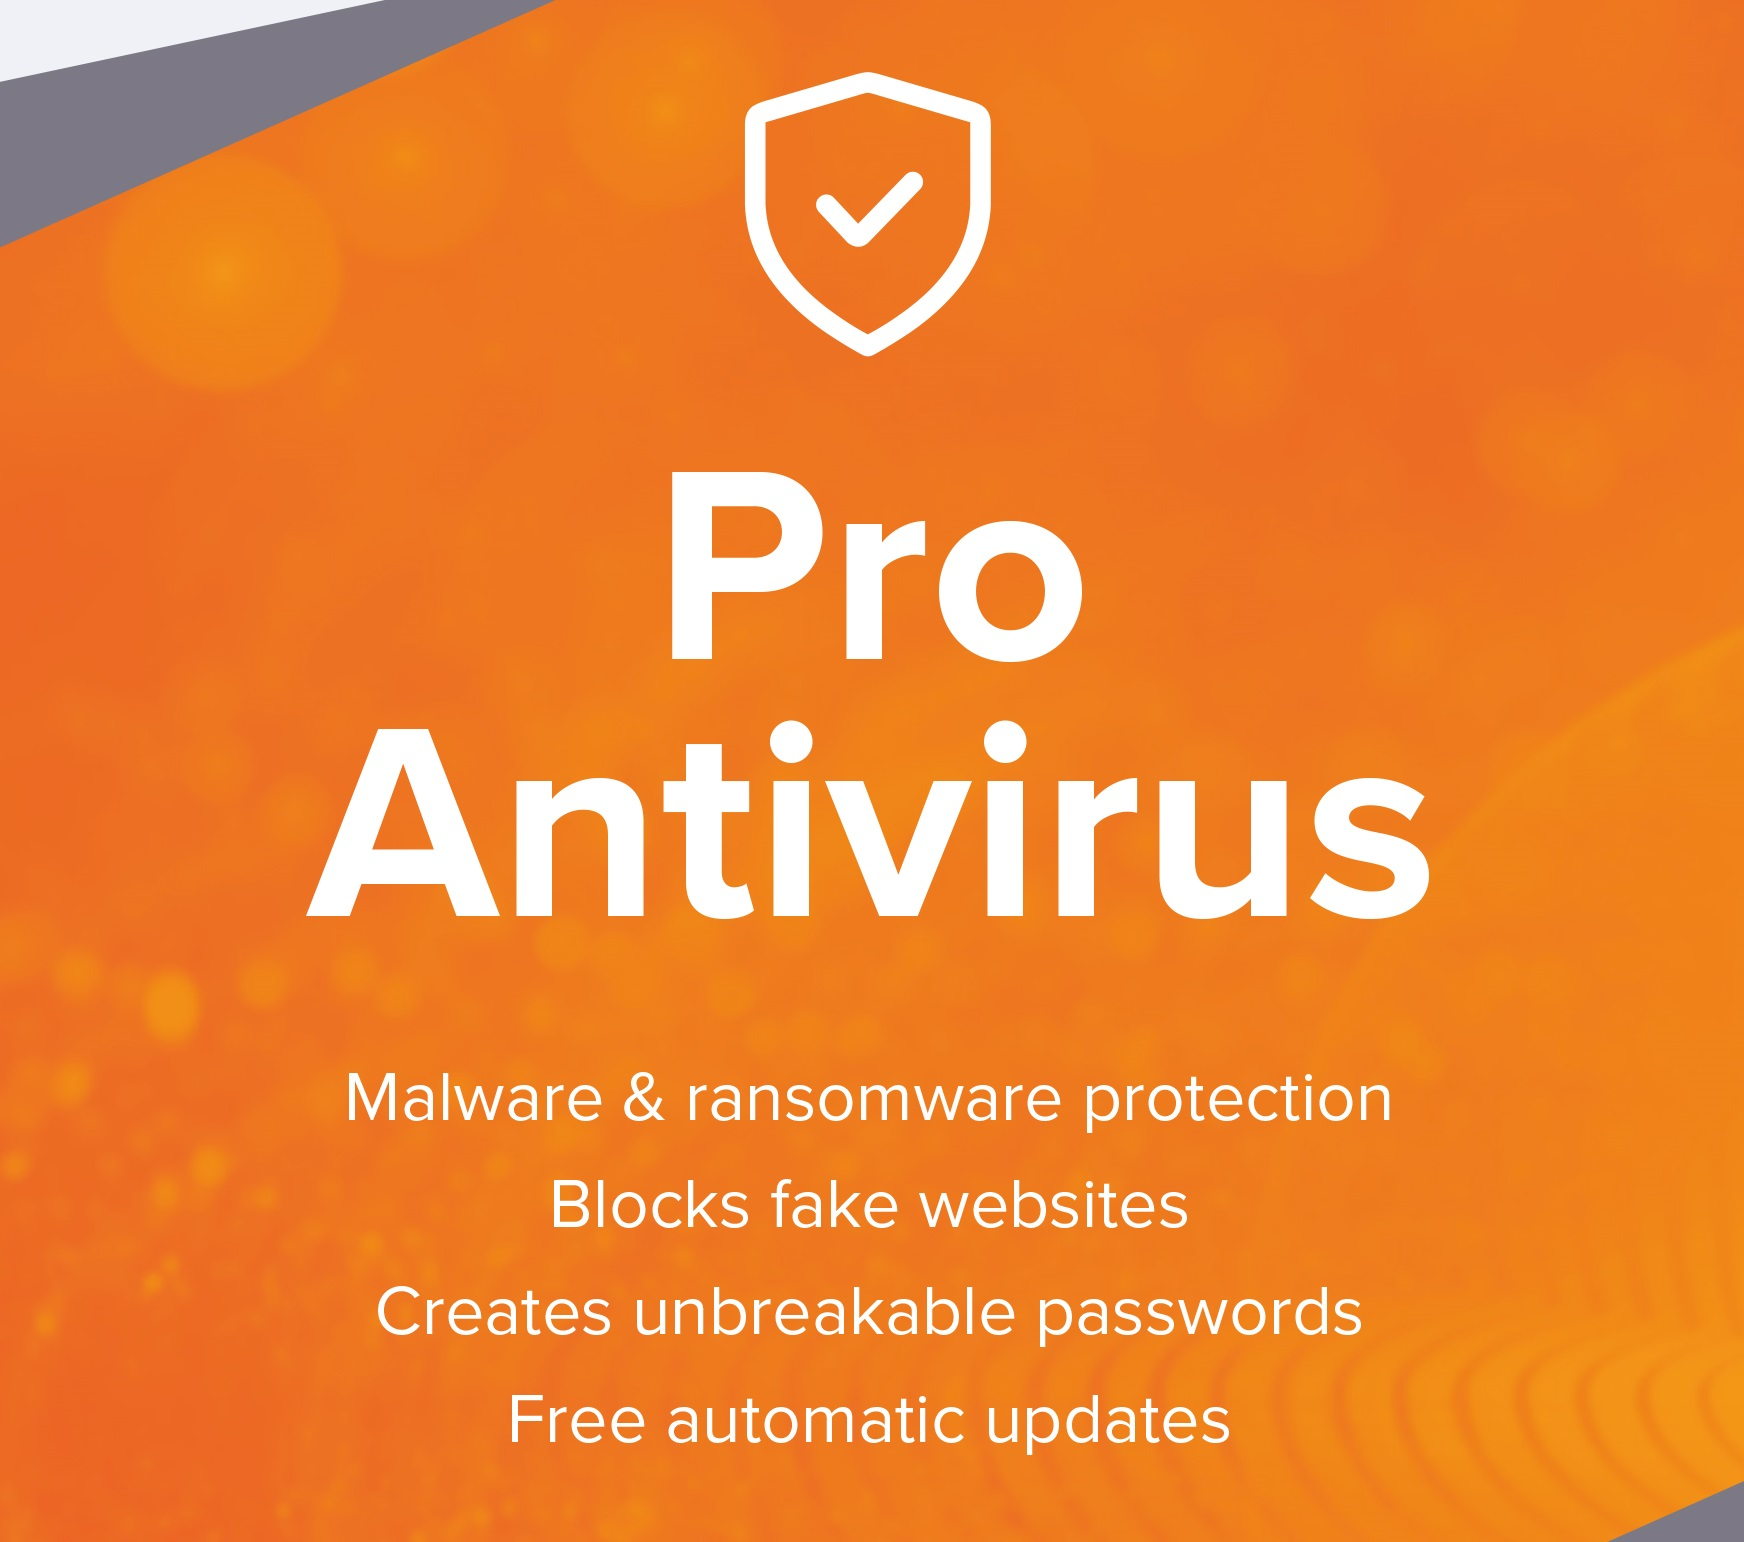 Avast Pro Antivirus 2017 Free Download